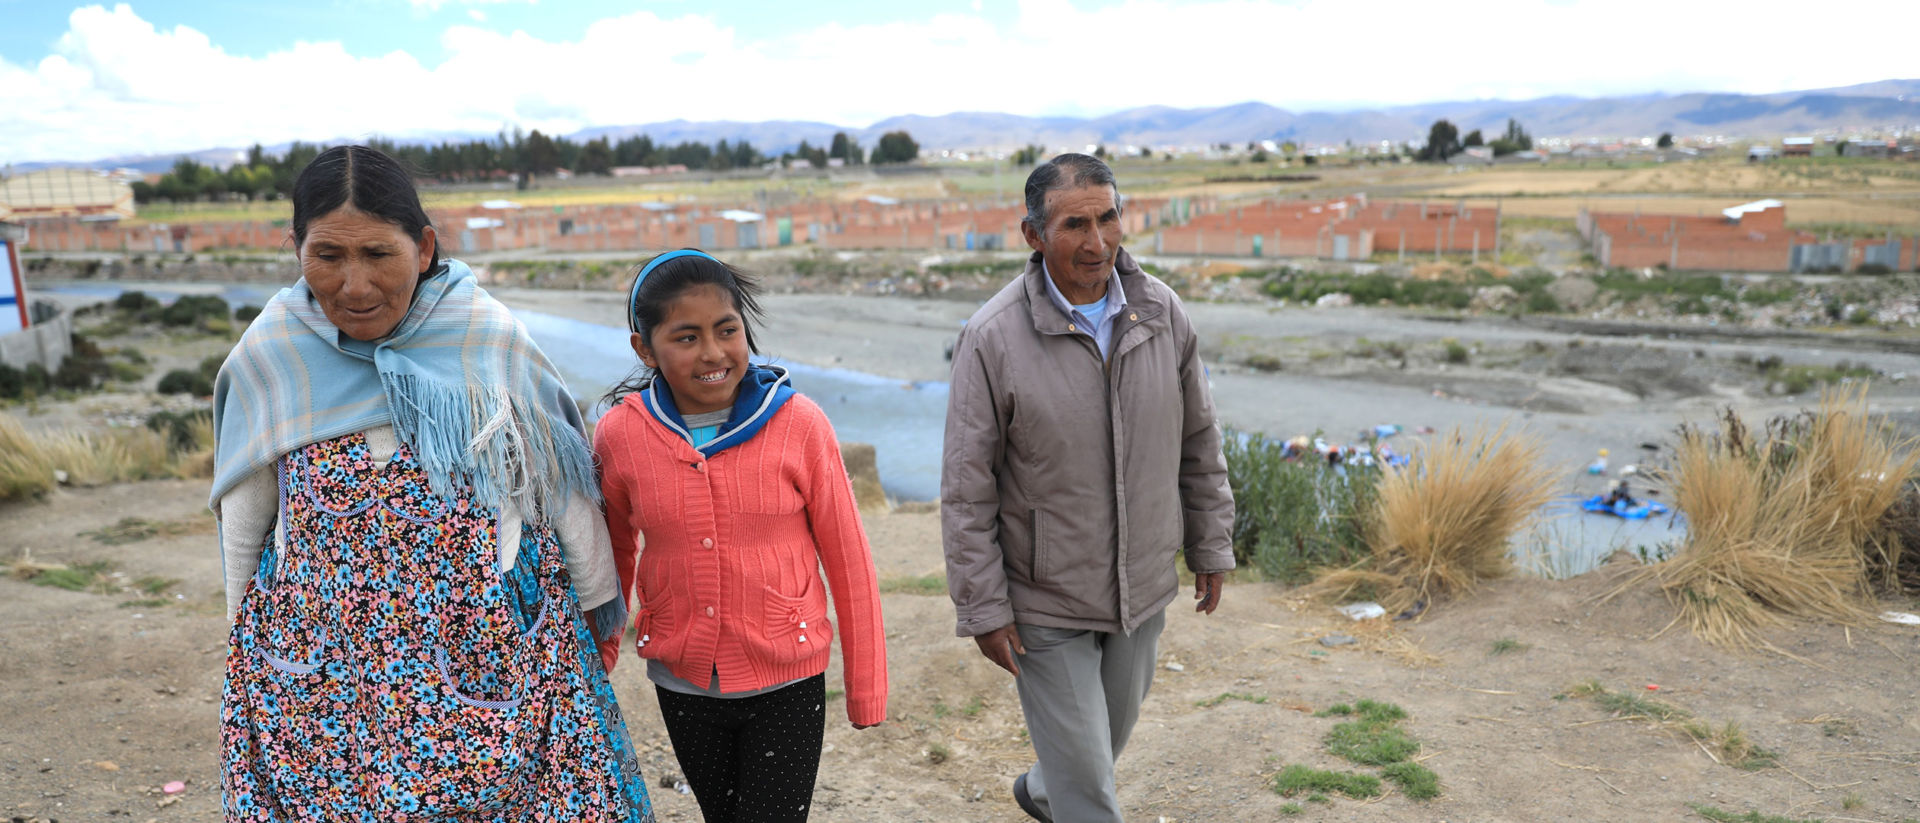 Nayely walks with her parents near the river where they and many other community members wash their clothes.